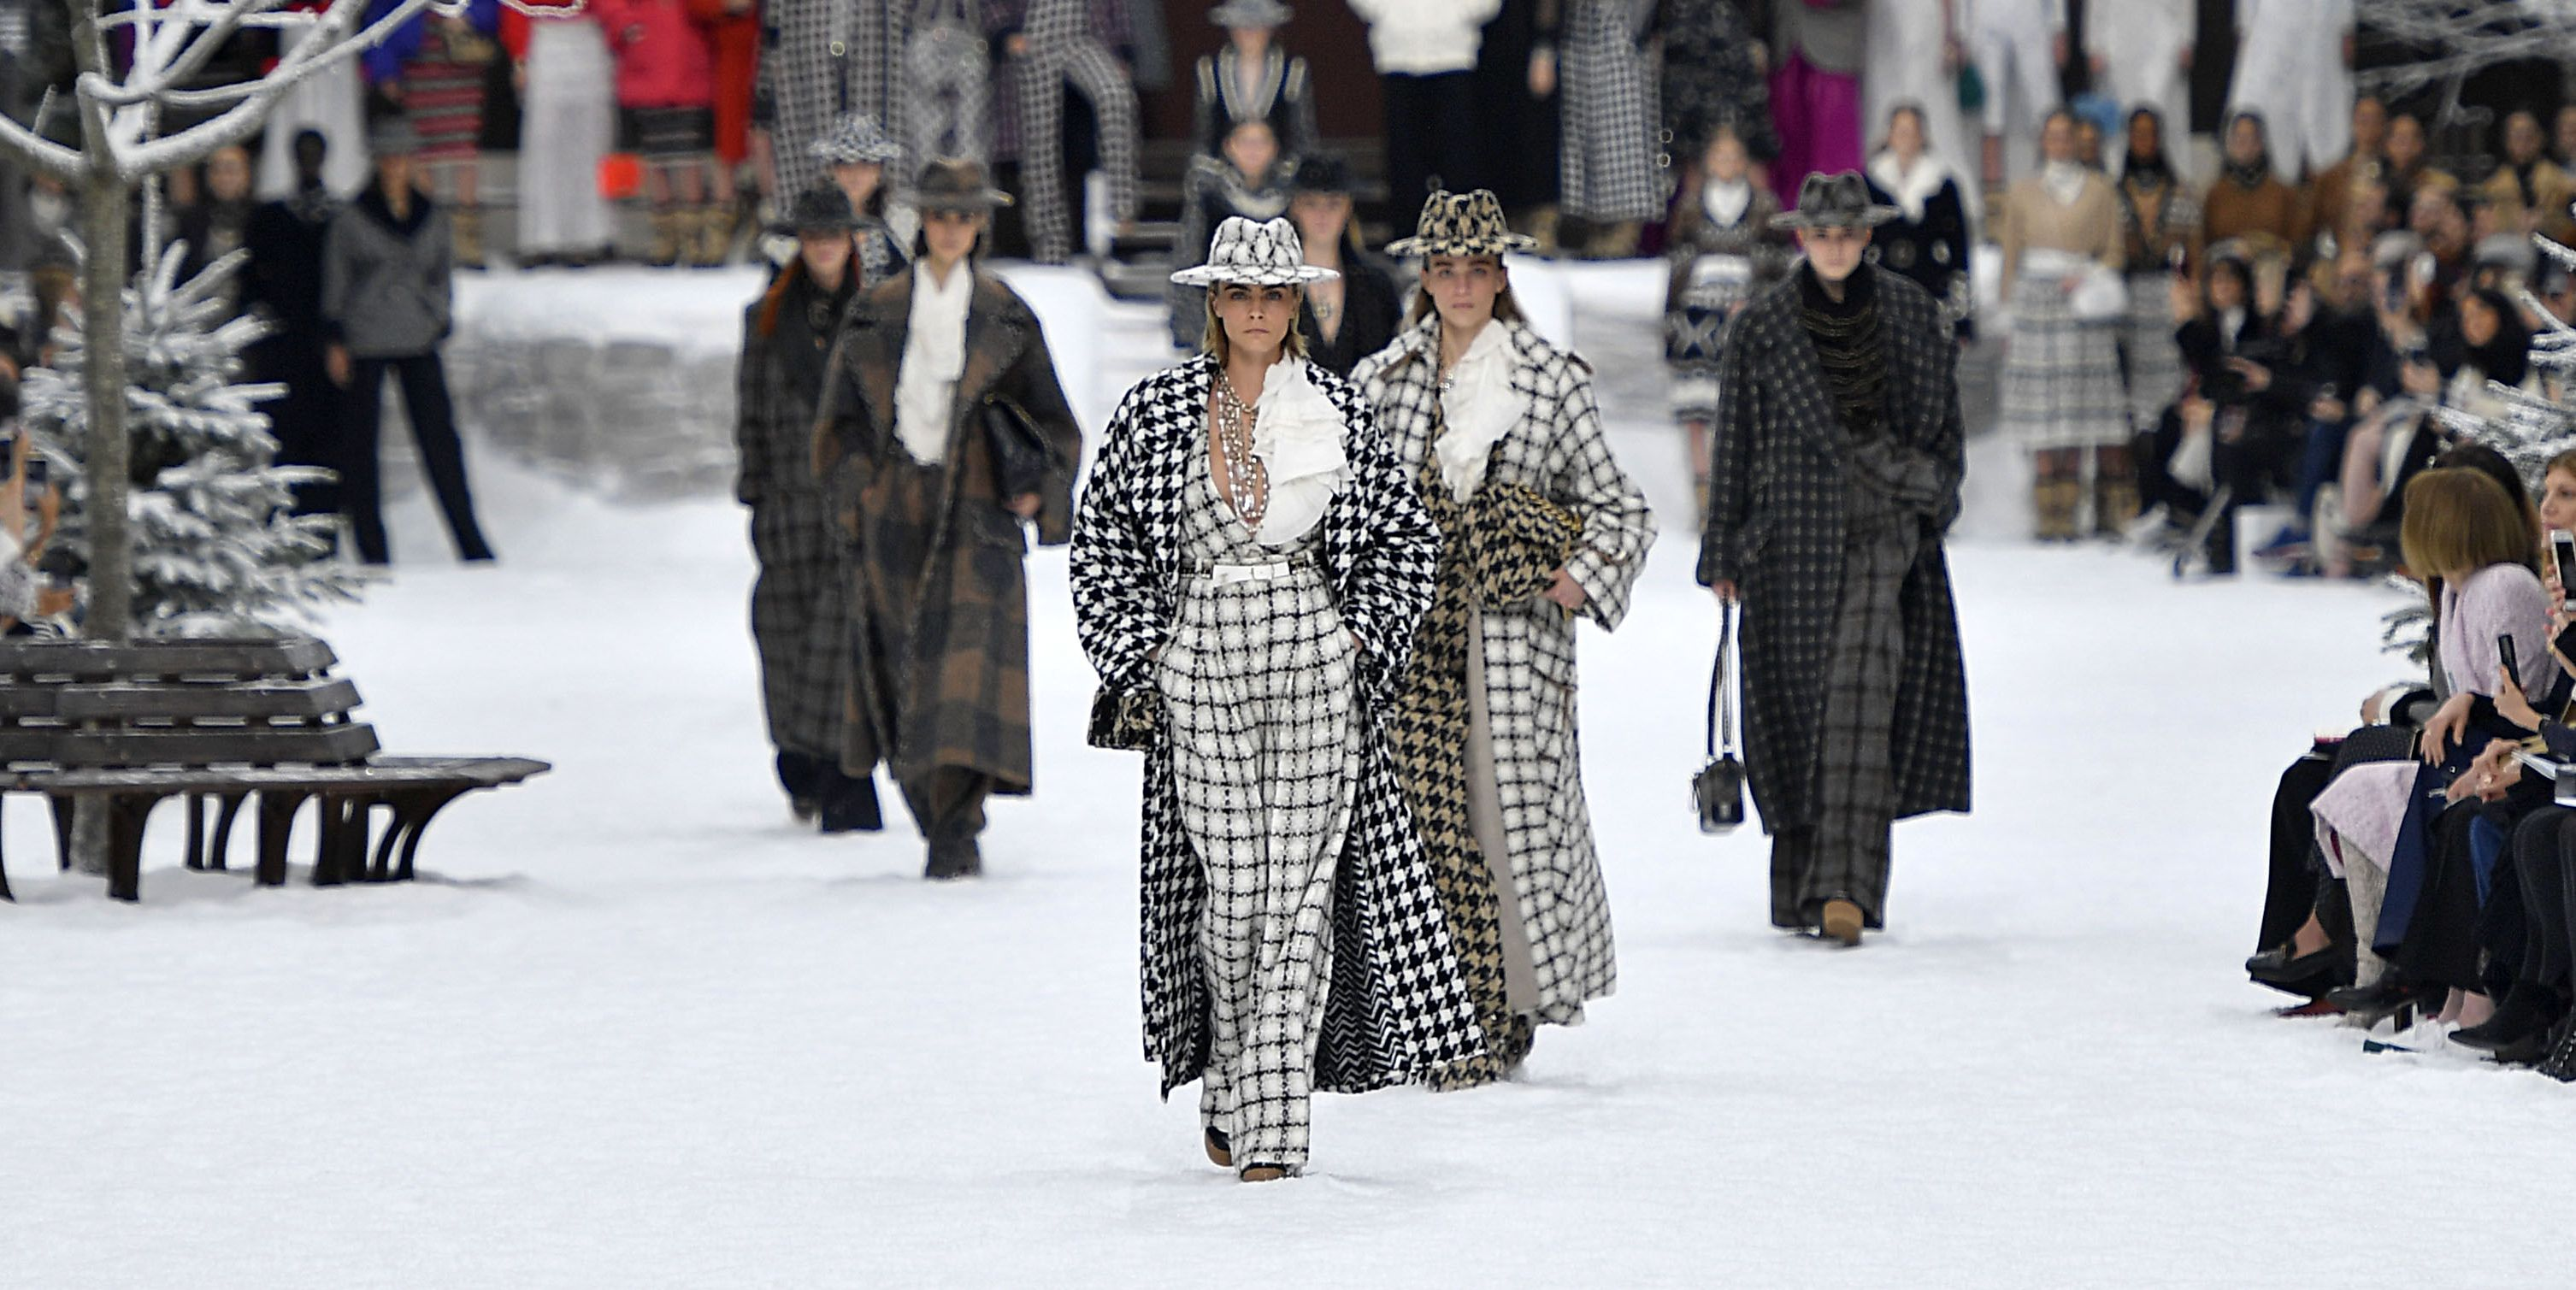 127 Great Looks from Paris Fashion Week